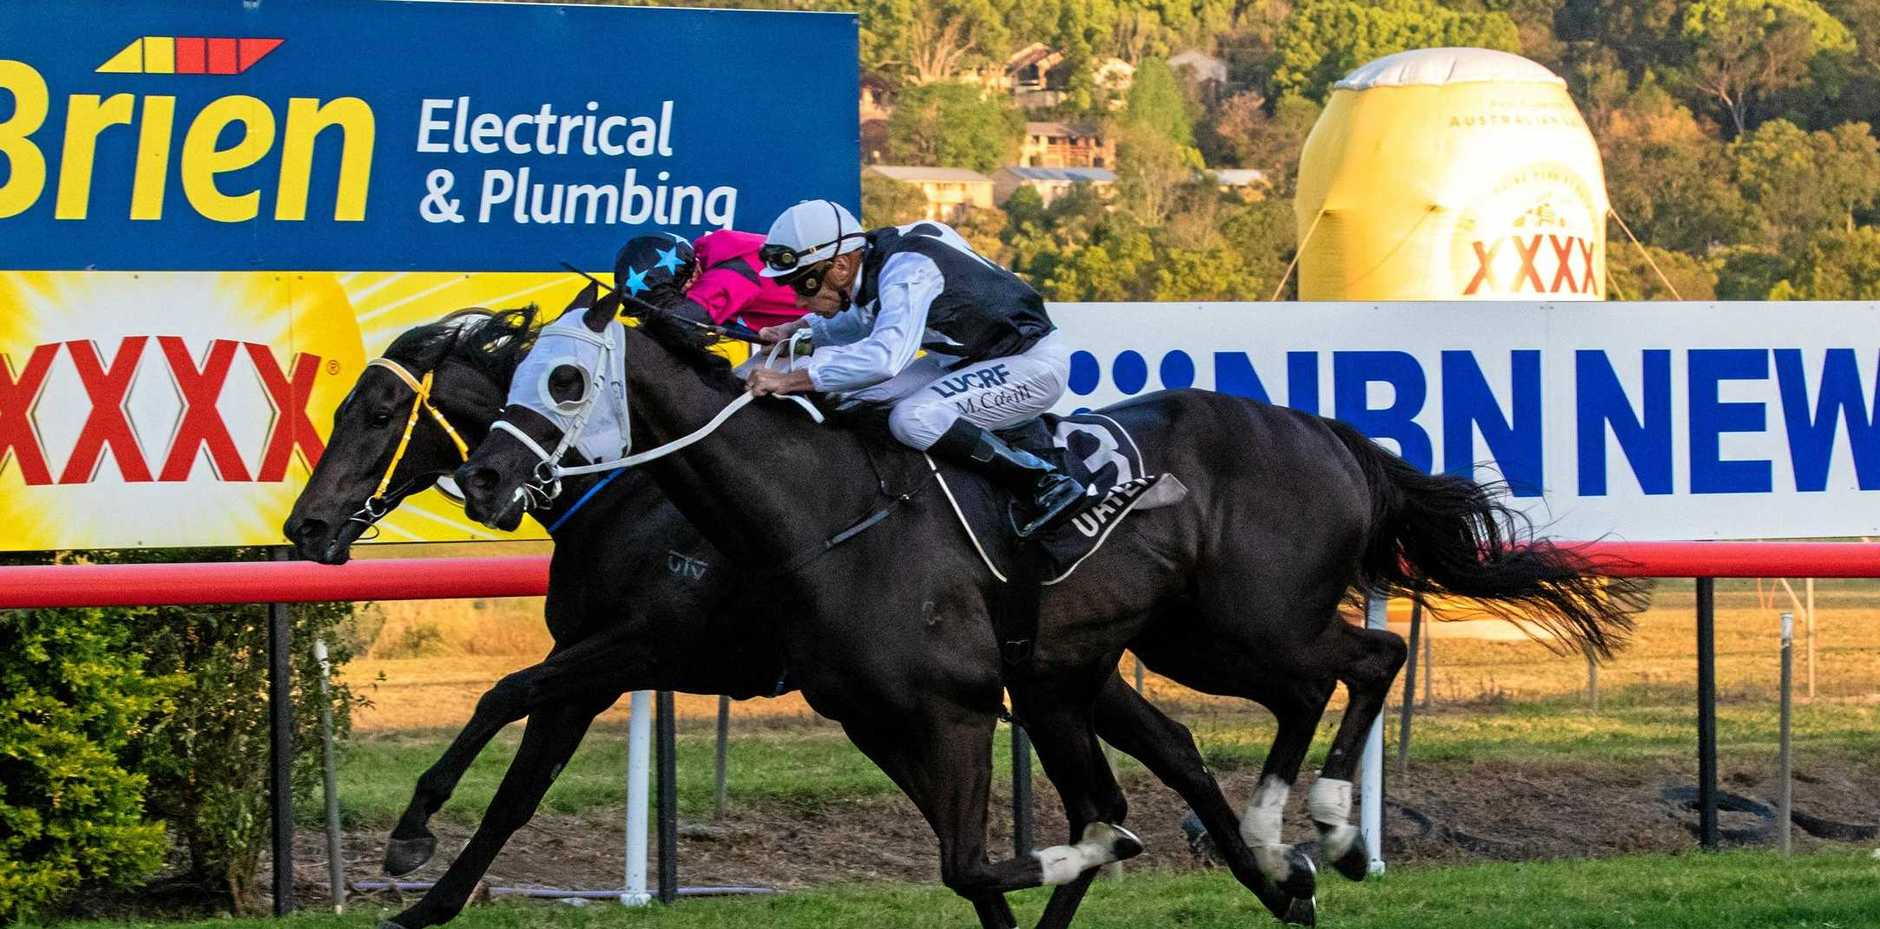 Jockey Michael Cahill rides Kuttamurra Al (No 3) to win the $75,000 Lismore Cup (2100m) today. The seven-year-old gelding, which won by a nose from Ambitious Prince, is trained by Lindsay Hatch.